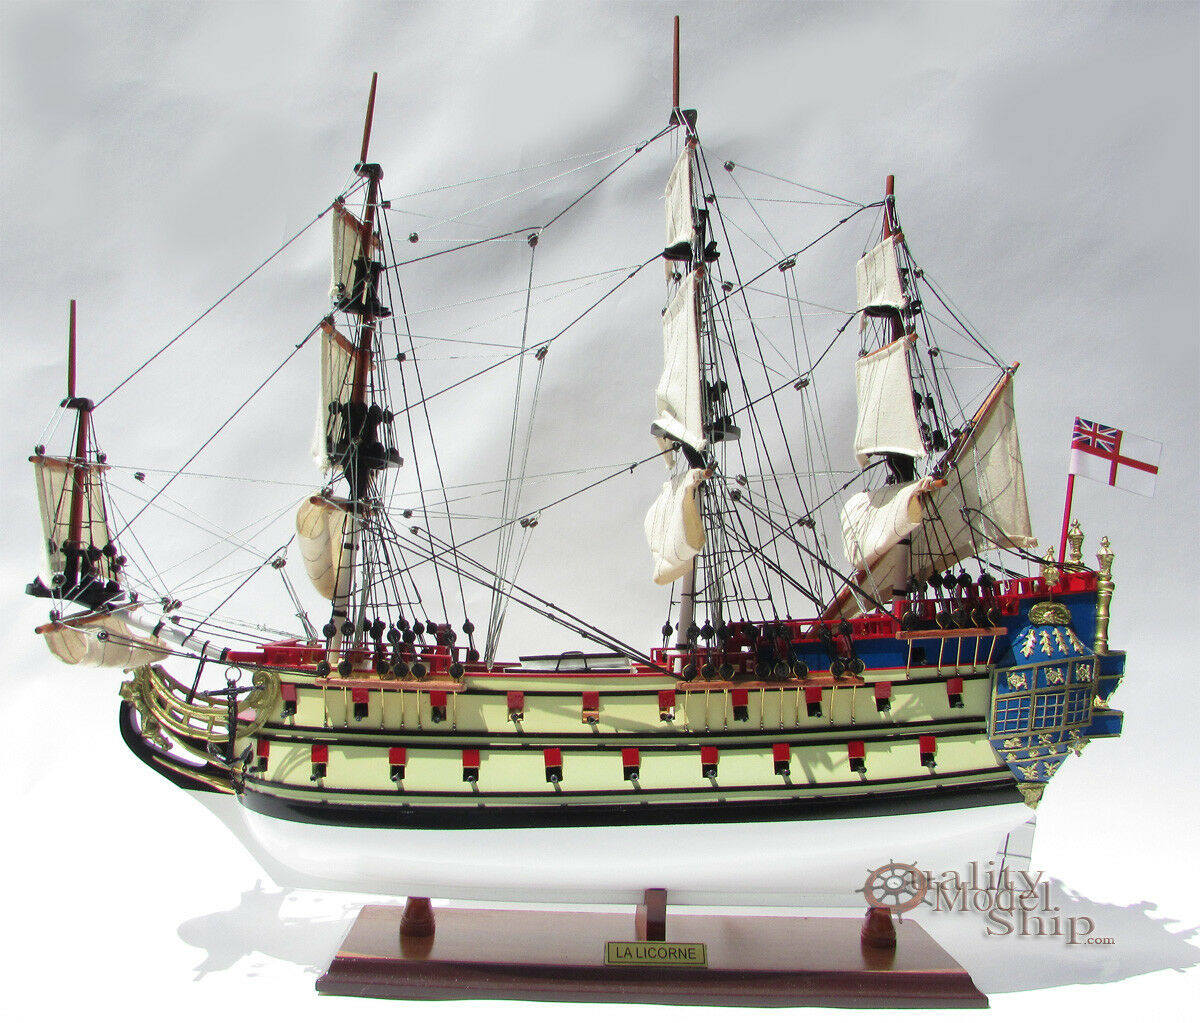 La Licorne Handcrafted Wooden Ship Model